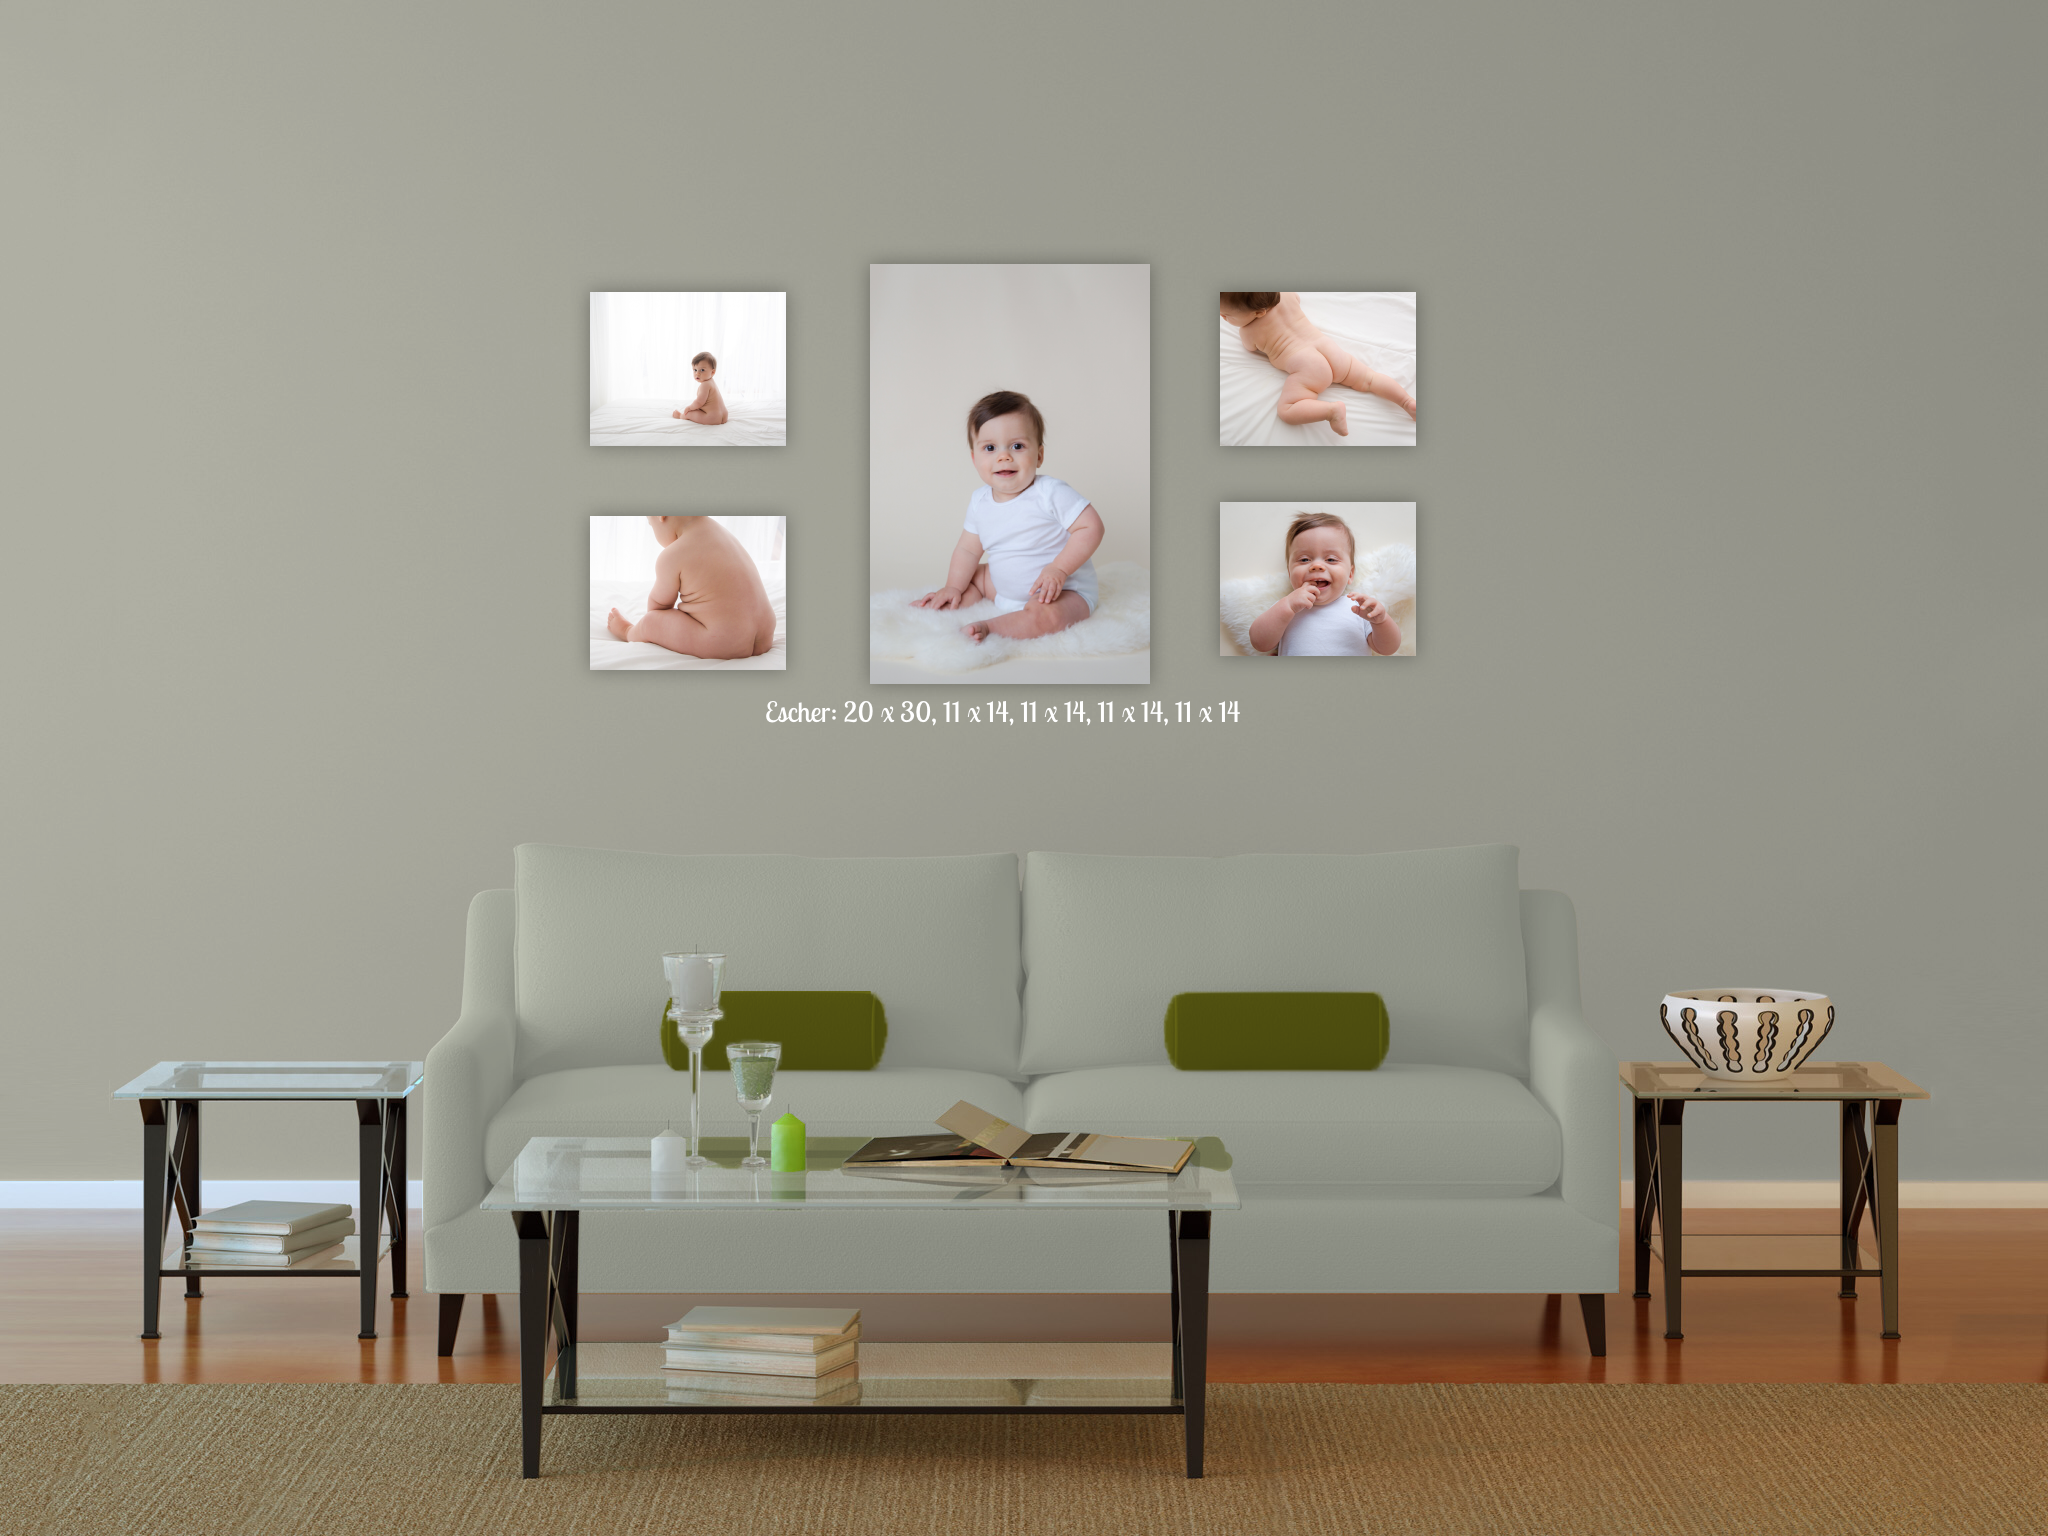 living room canvas wall gallery with 9 month old baby boy wearing white. new jersey children's photographer